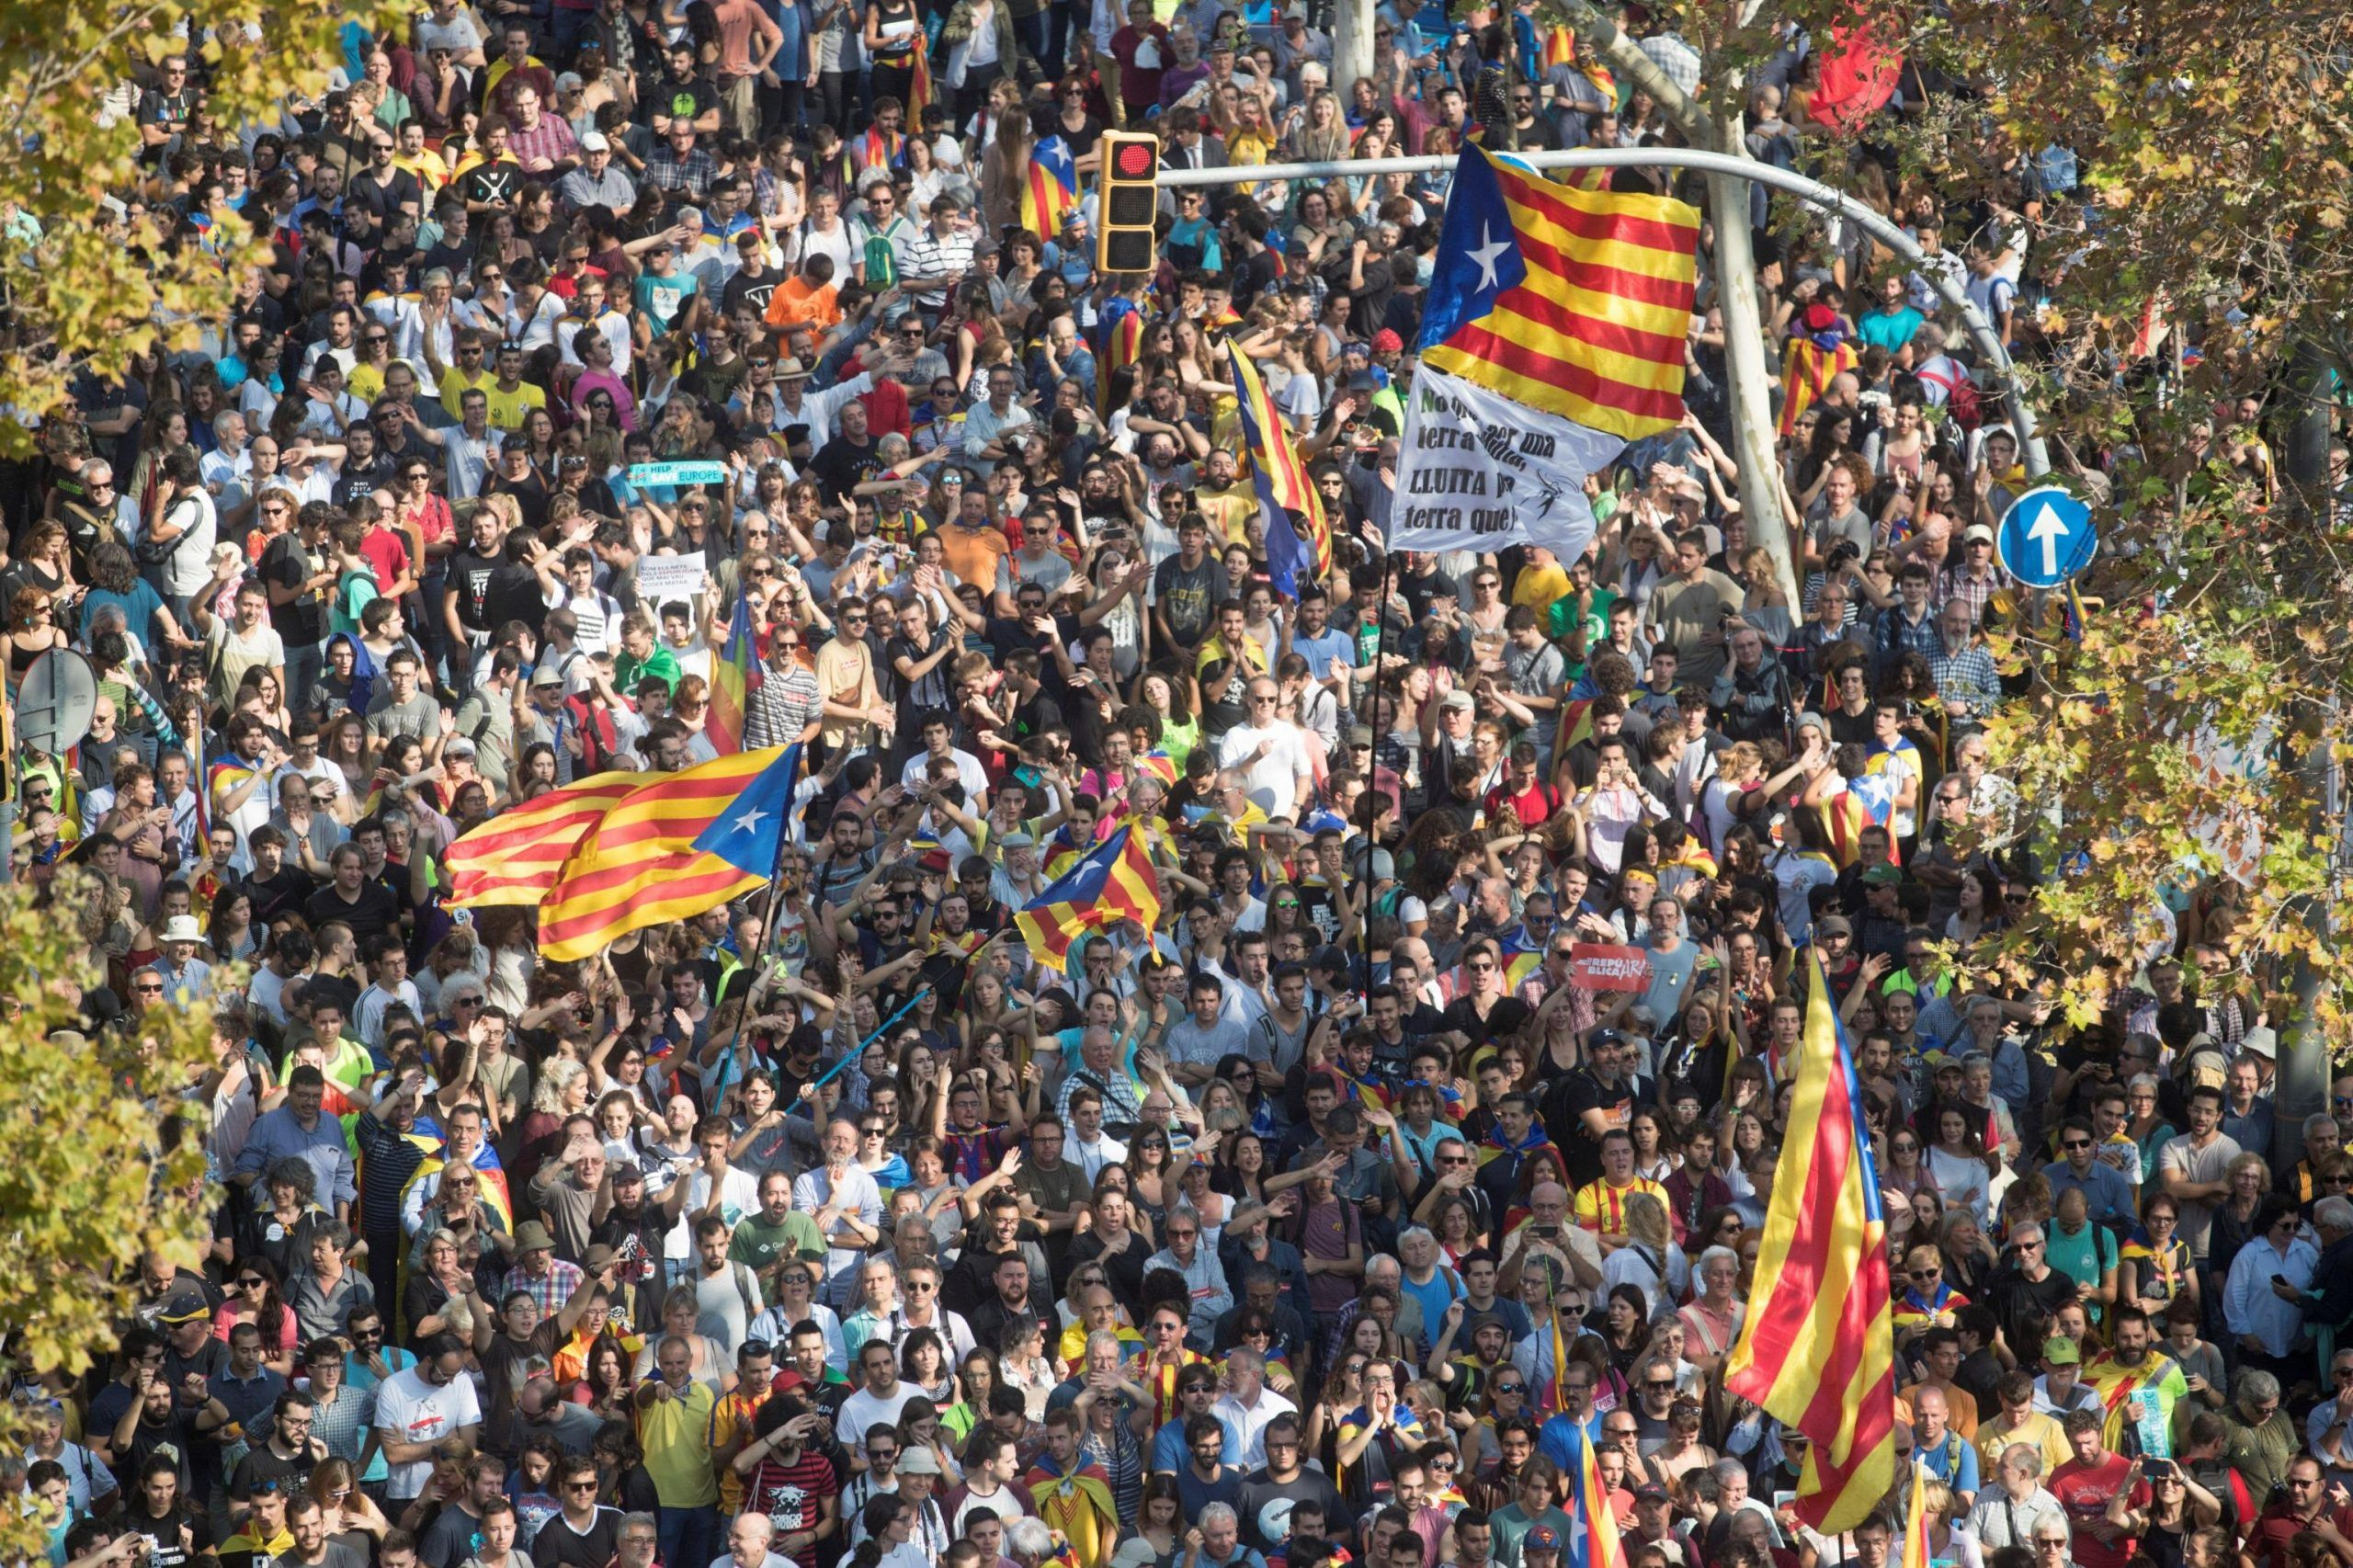 Protest in support of the independence declaration in Catalonia